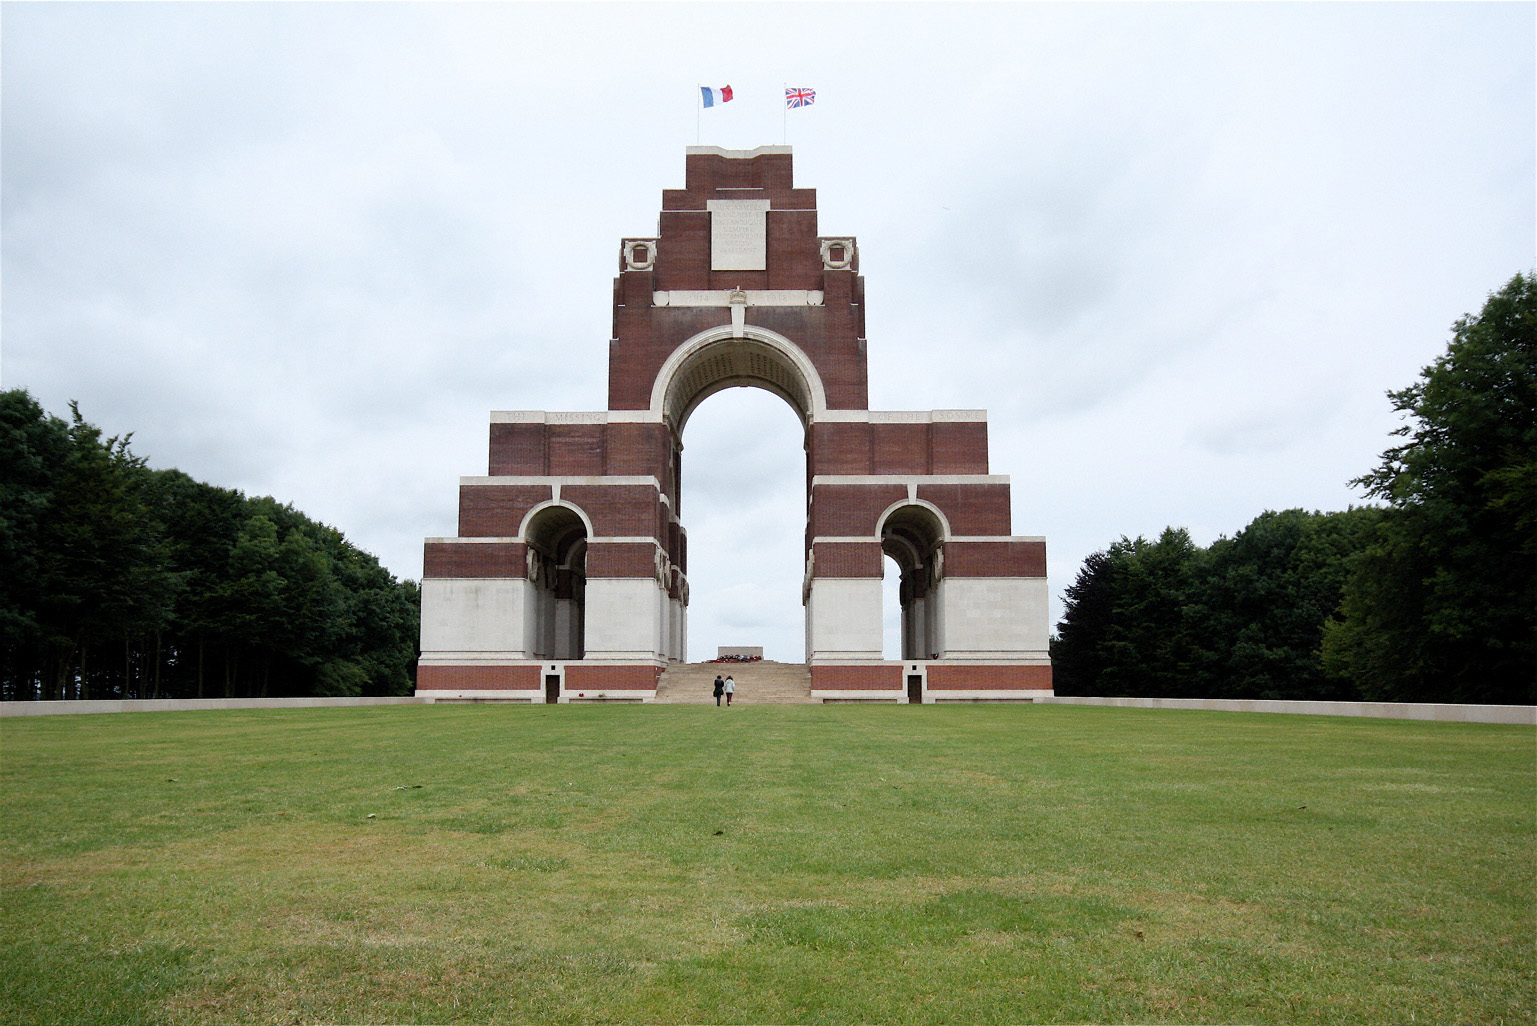 The Thiepval Memorial commemorates almost 73,000 soldiers who died on the Somme battlefields between July 1915 and 20th March 1918 who have no known grave. Image from The First World War poetry Digital Archive, University of Oxford